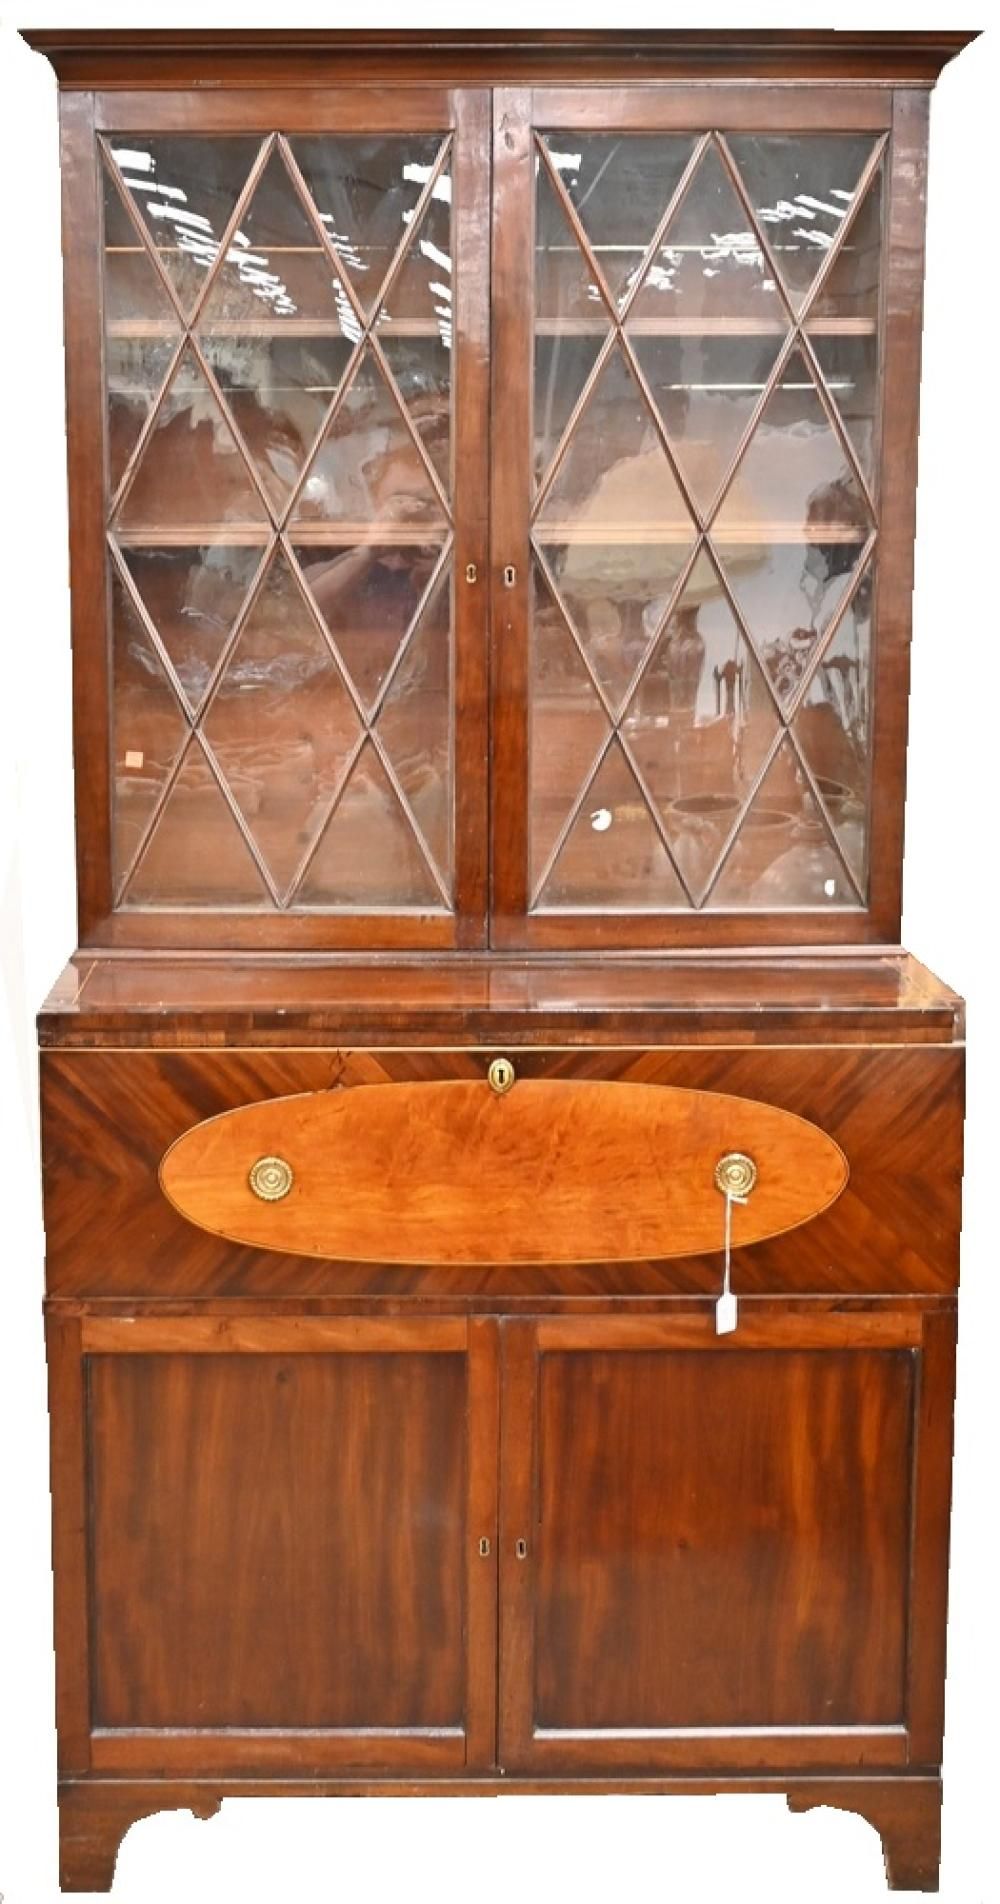 George III Mahogany Secretary Desk in Two Partsupper section with two glazed doorsover lower section with drop front desk over tw...